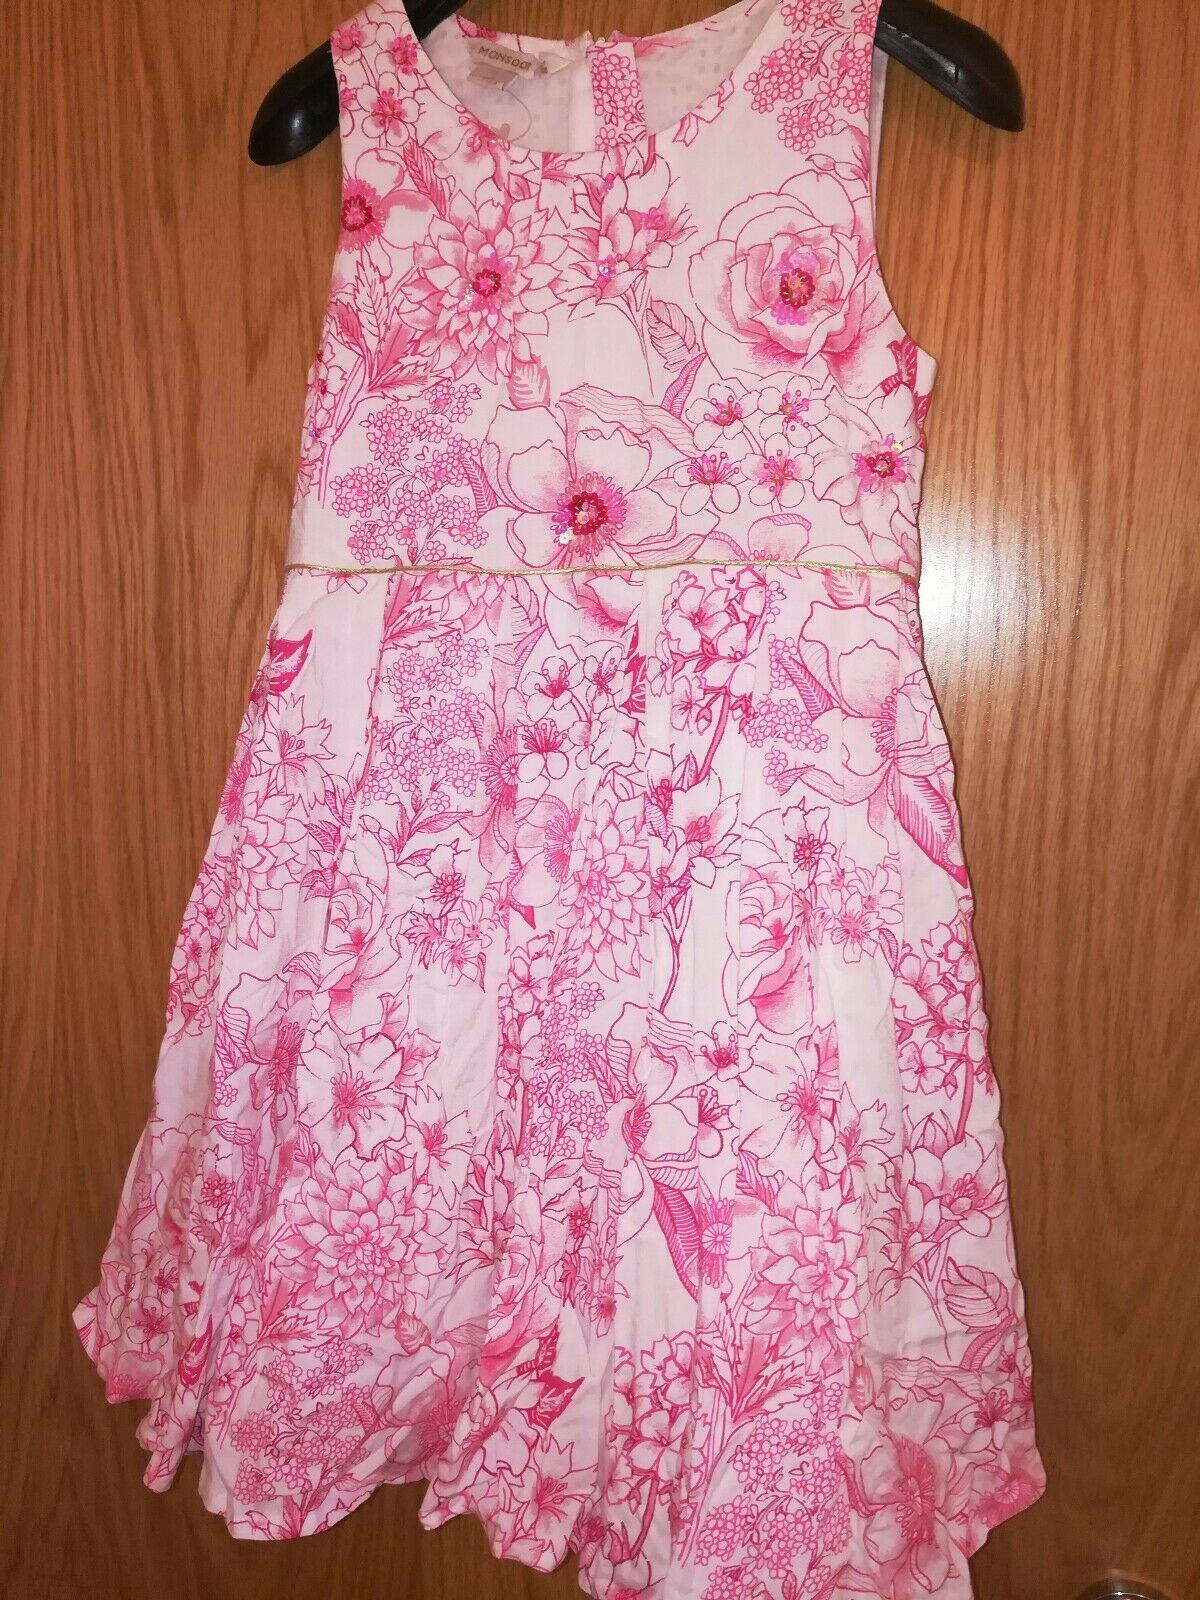 white dress with pink outline flowers